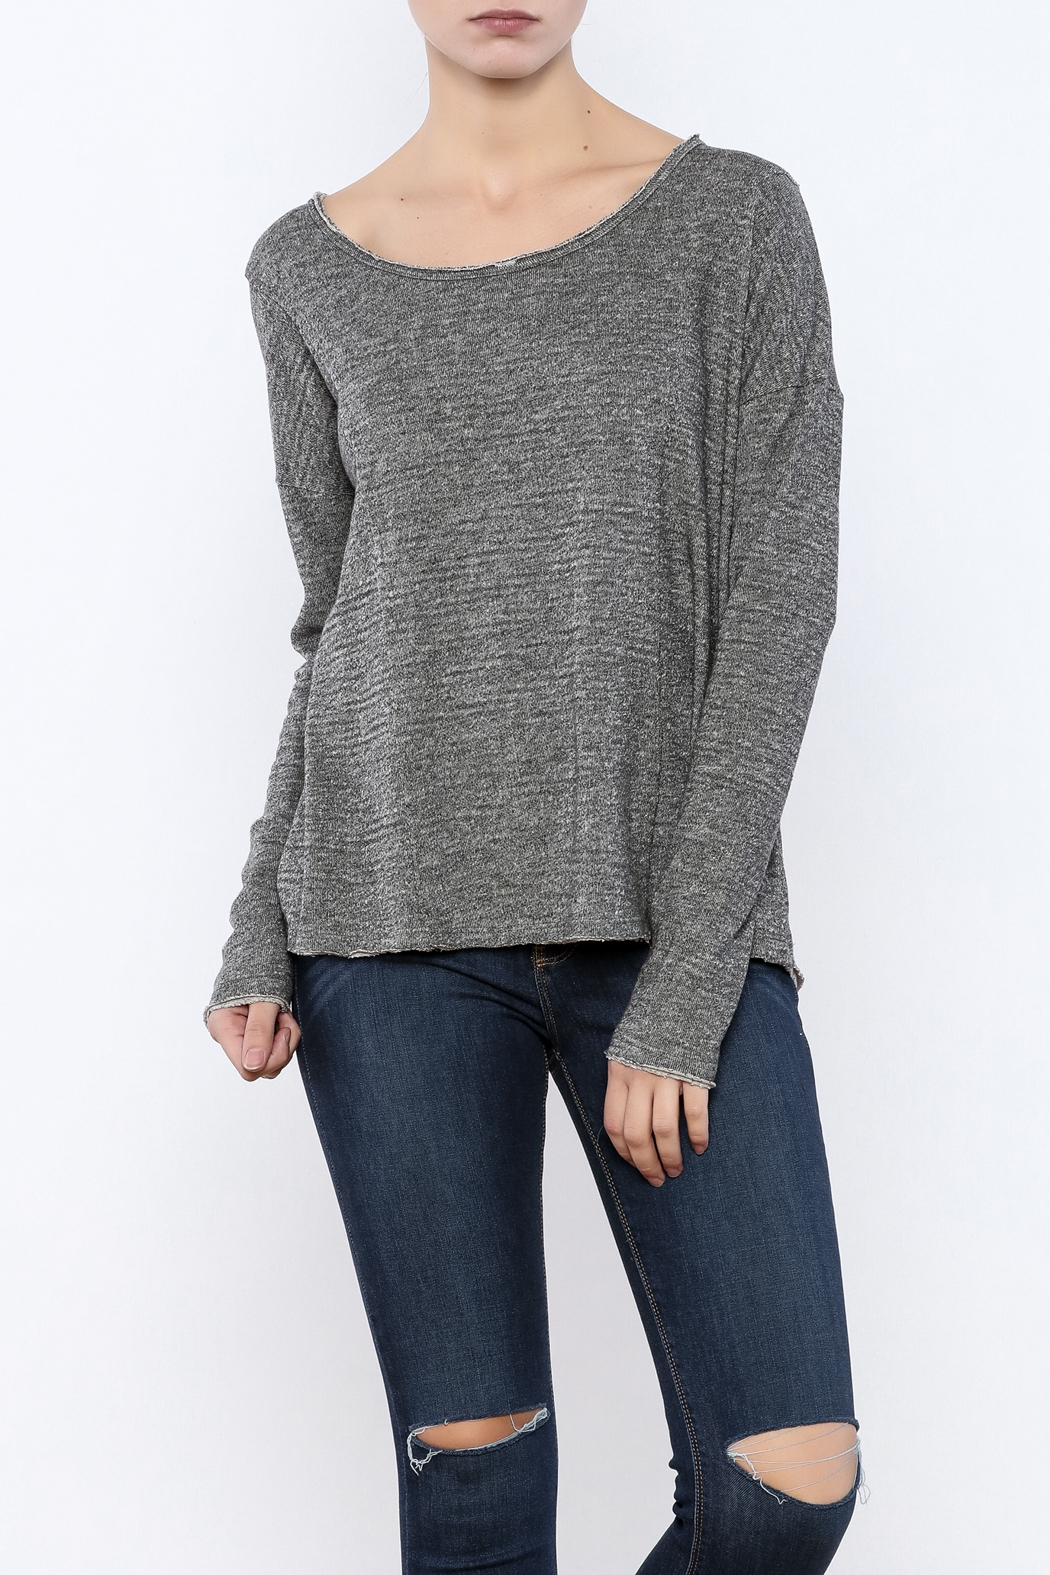 Others Follow  Winding Road Sweatshirt - Front Cropped Image